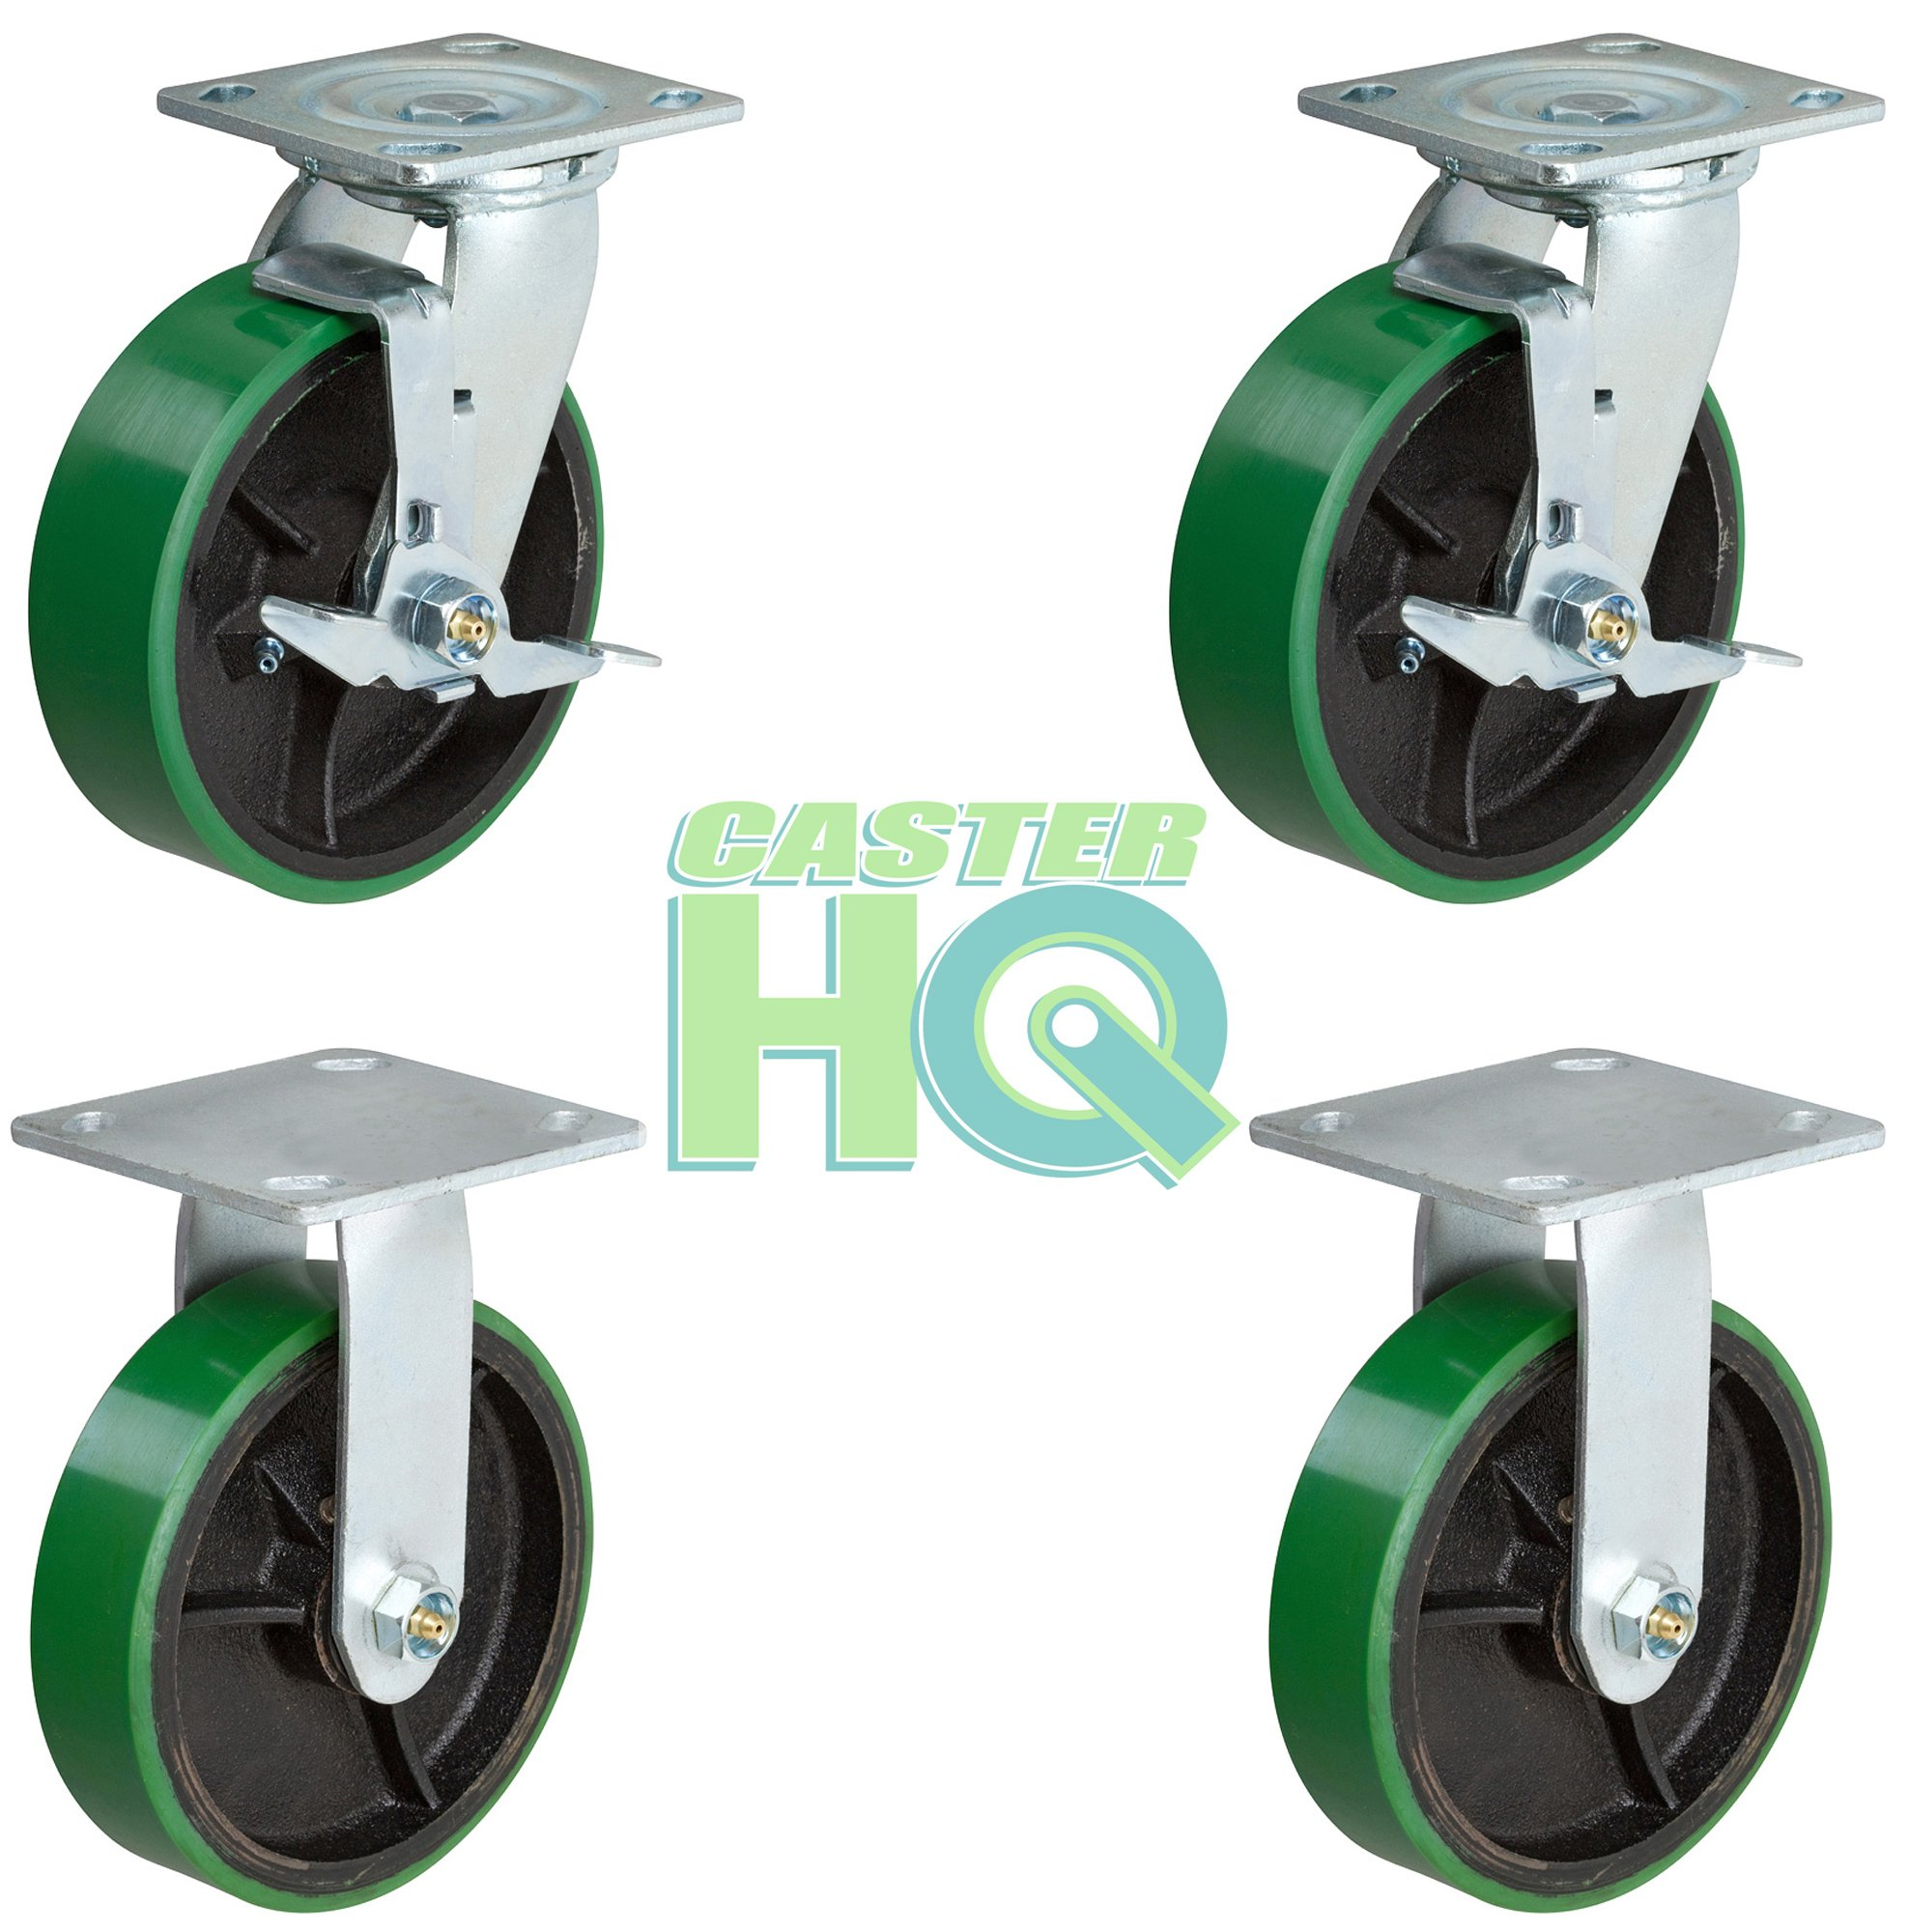 CasterHQ - 6 inch Heavy Duty Caster Set - 2 Swivel with Brake and 2 Fixed - Green Polyurethane Tread on Steel Core - Set of 4 - Toolbox Replacement Casters - 4 Pack